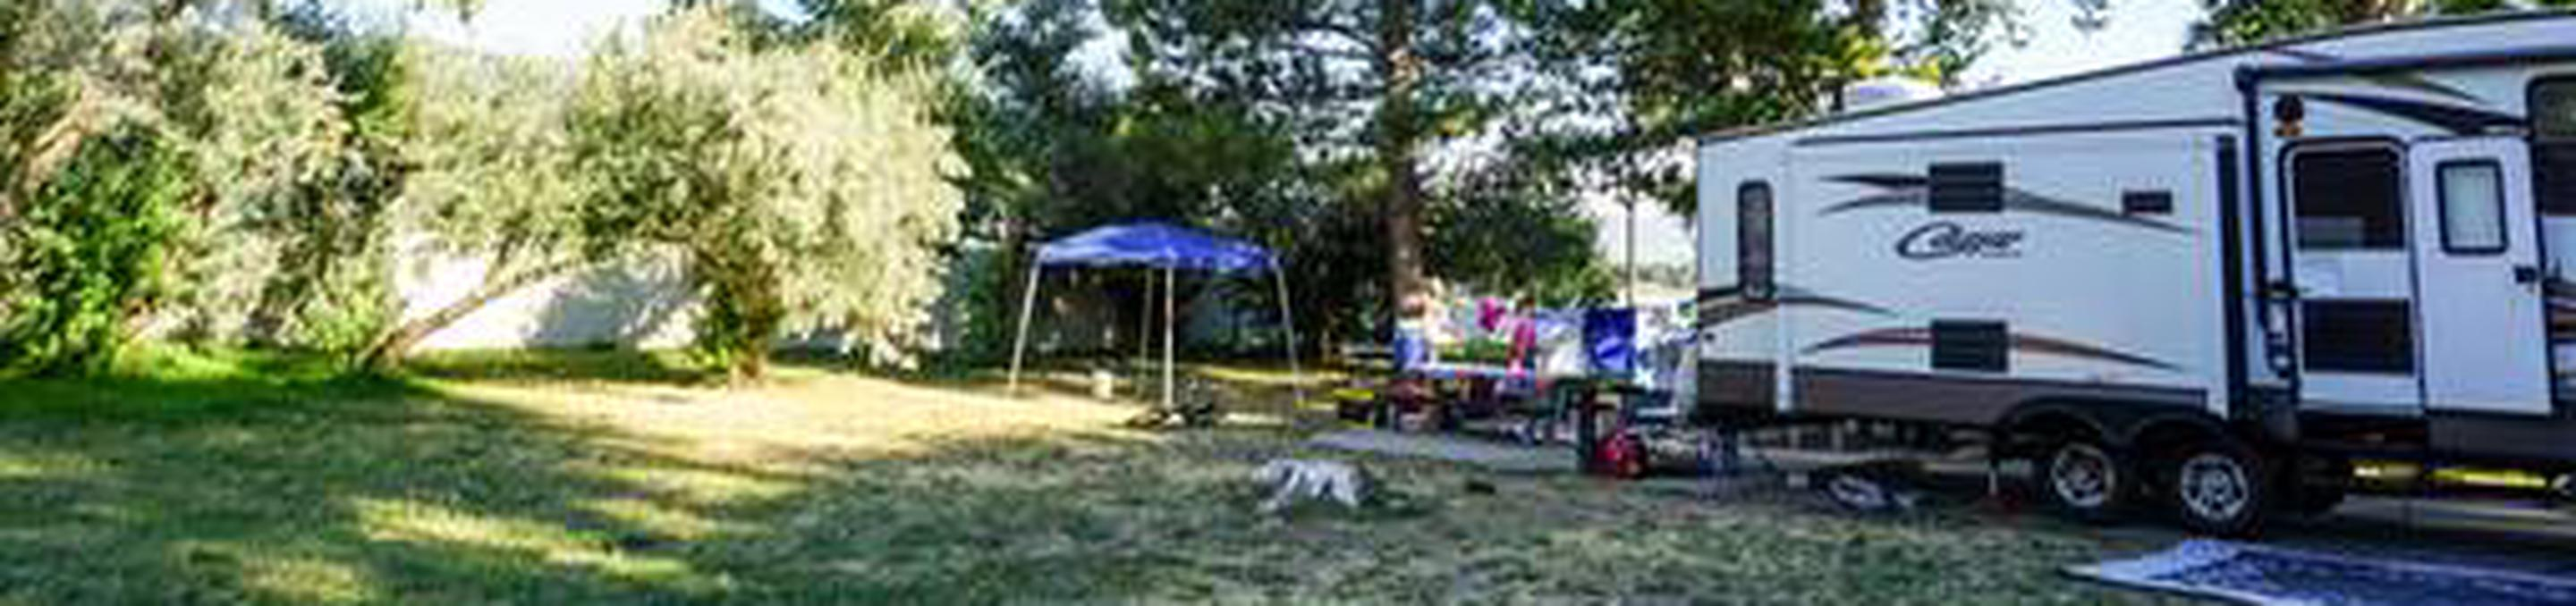 Anderson Cove Campground C-046